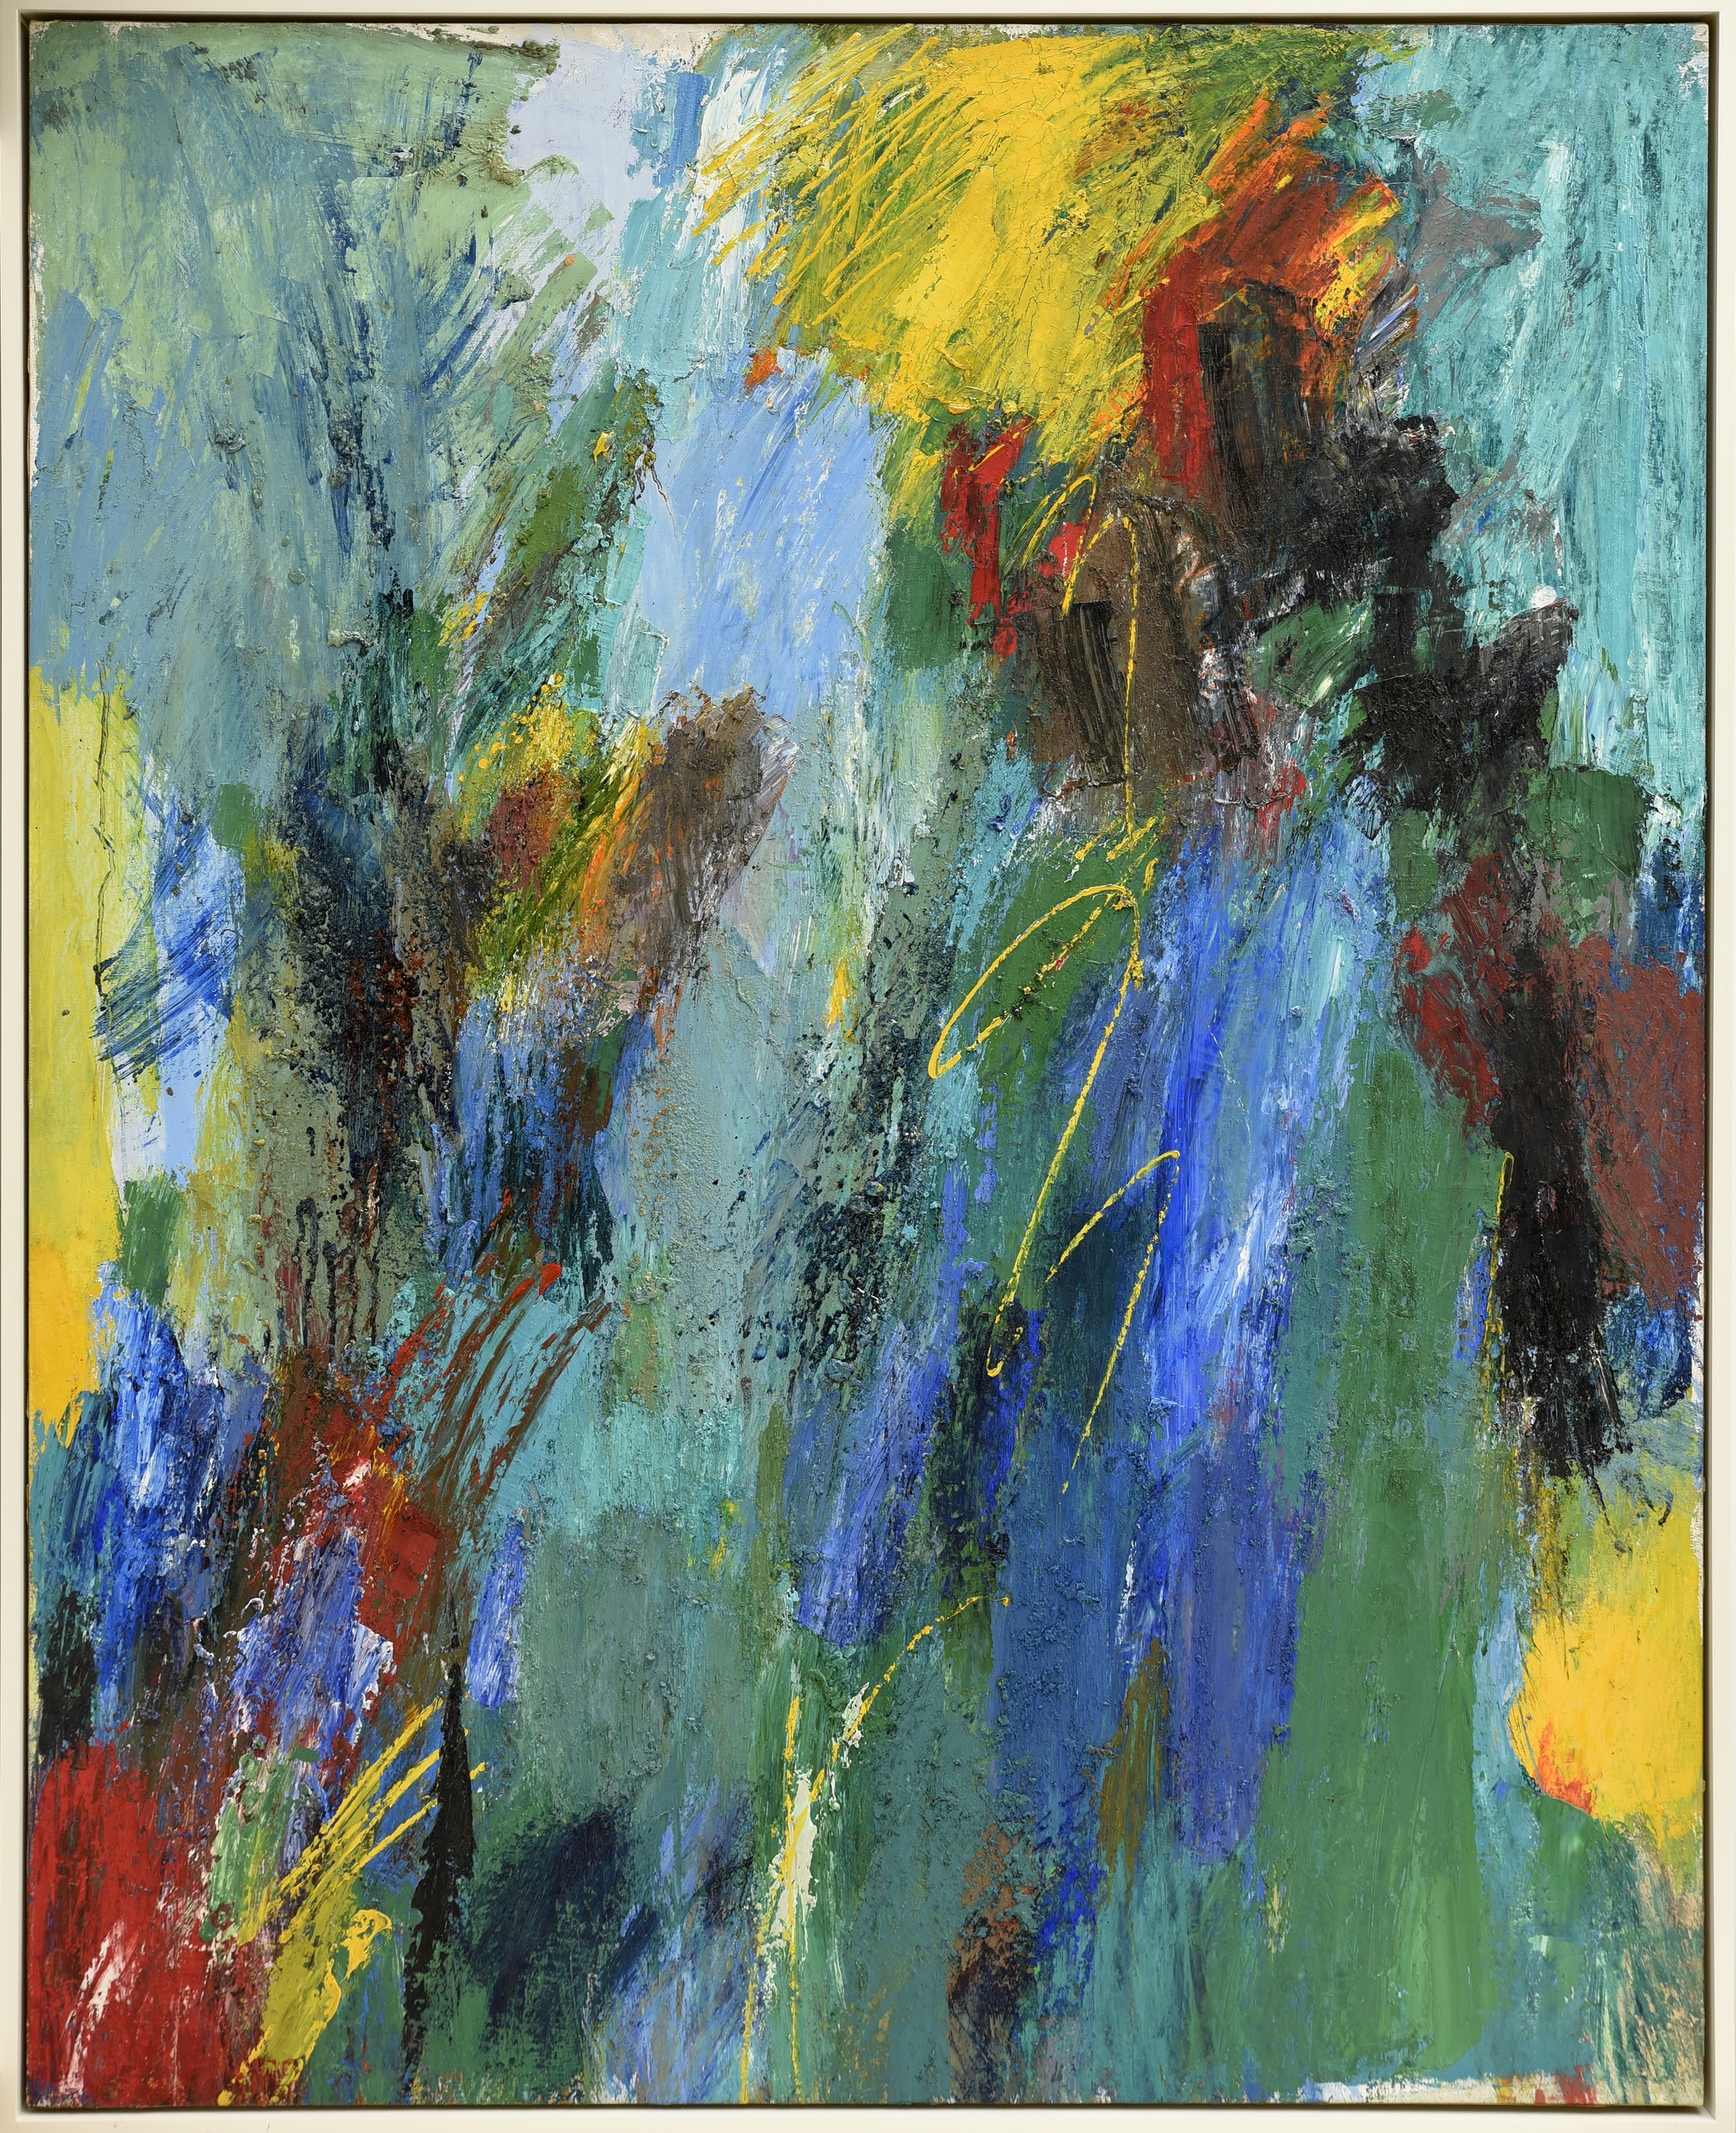 Untitled  , Oil on canvas, c. 1950s, 52 x 45 inches